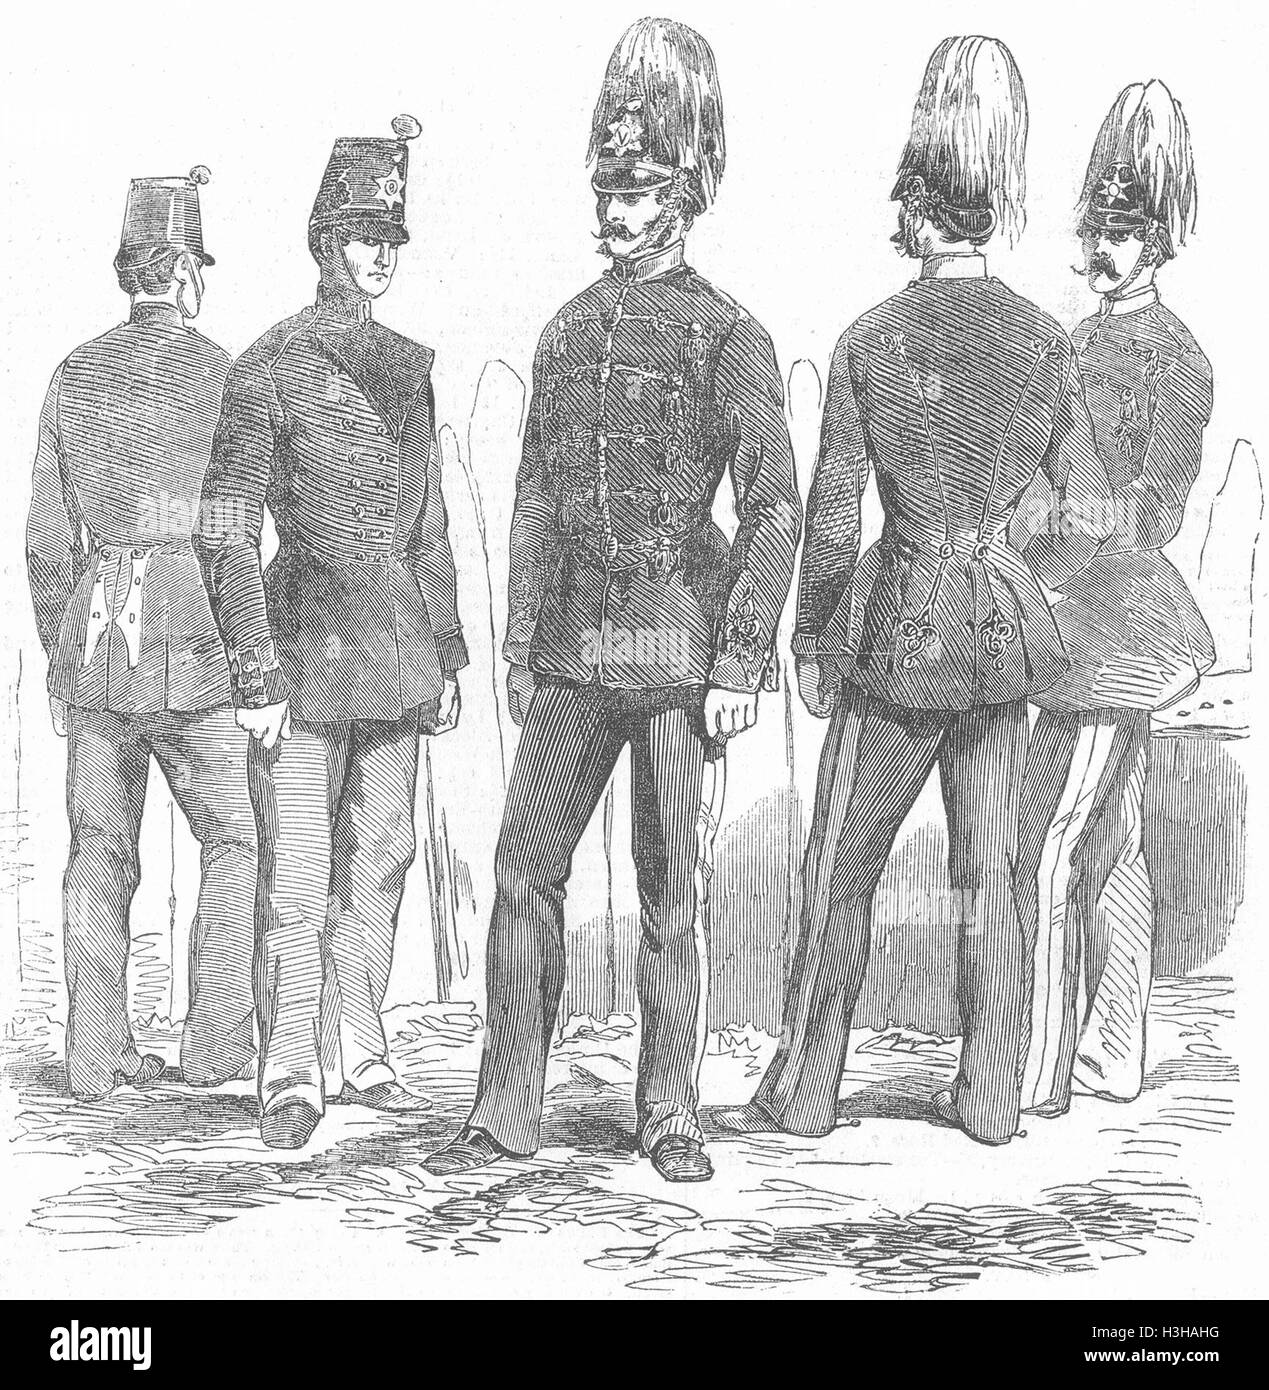 The Light Infantry Black and White Stock Photos & Images - Alamy